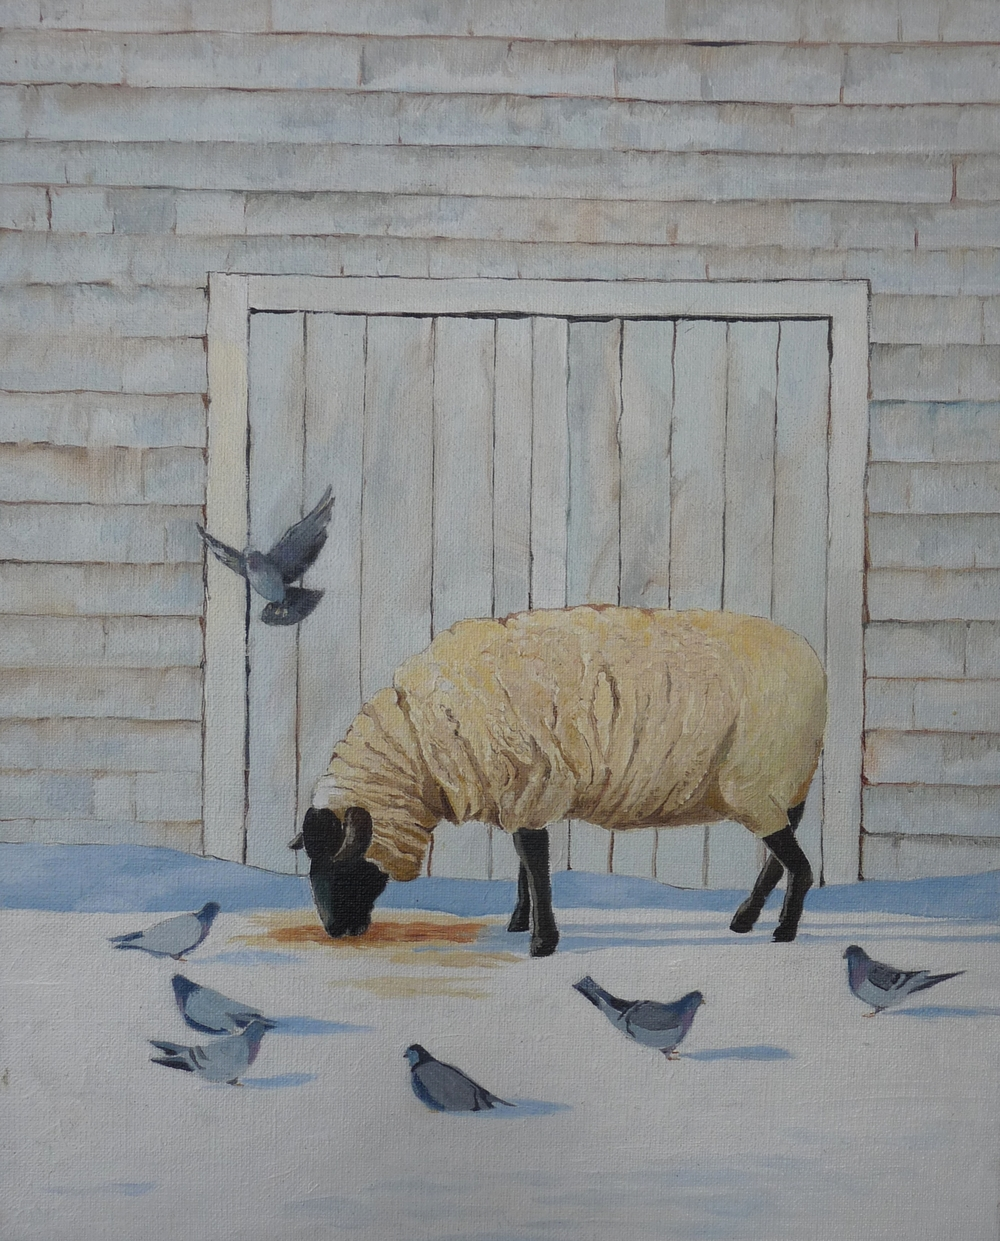 sheep by shed